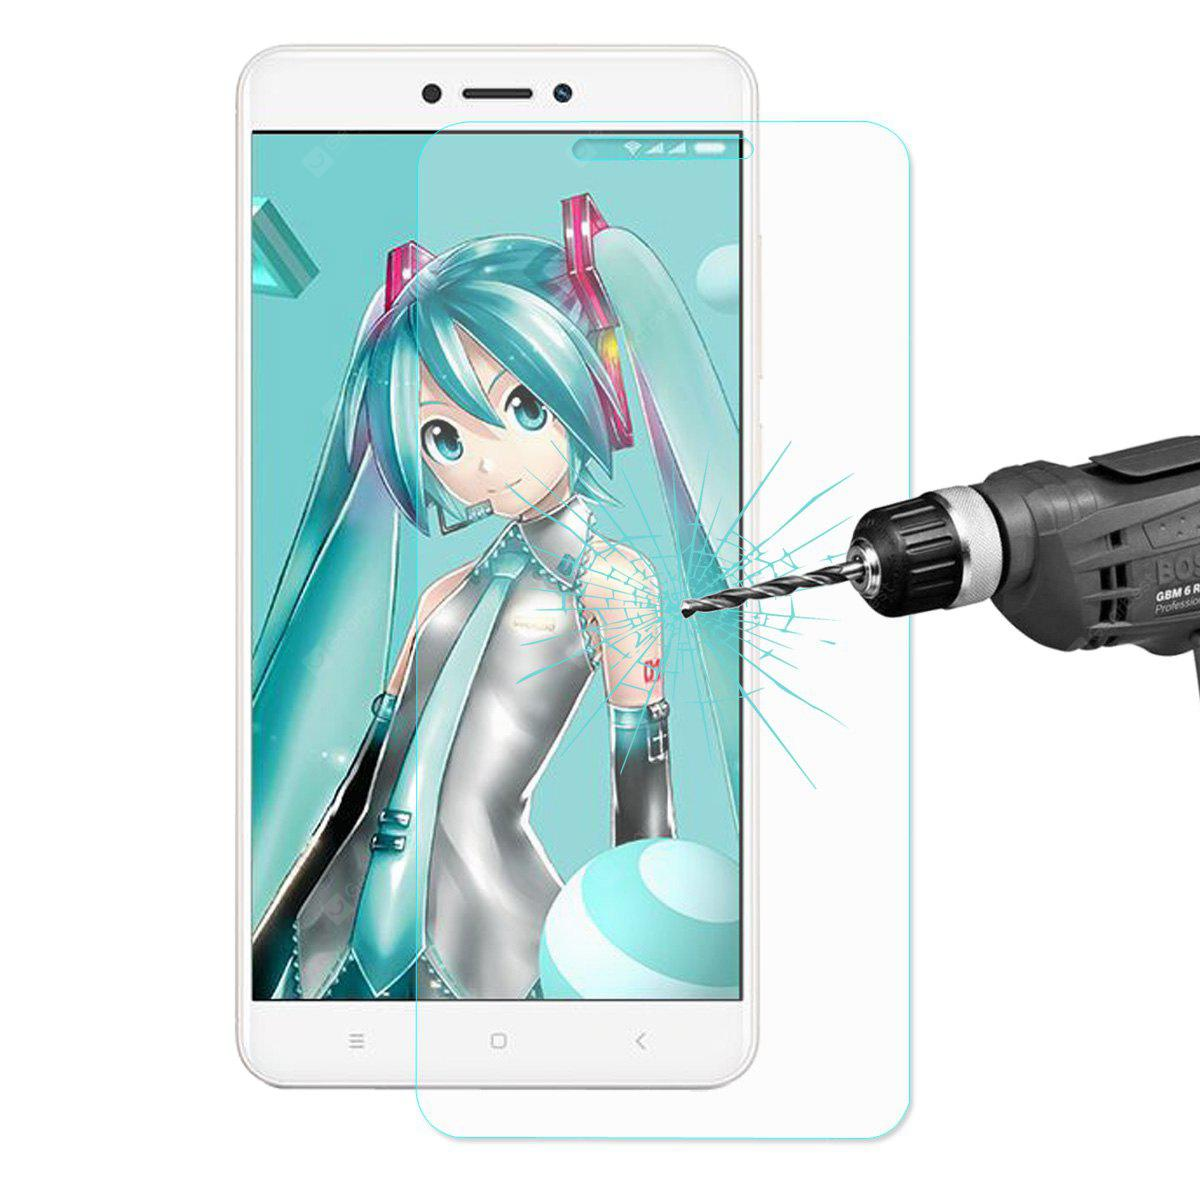 HatPrince 0.26mm Tempered Glass for Xiaomi Redmi Note 4X